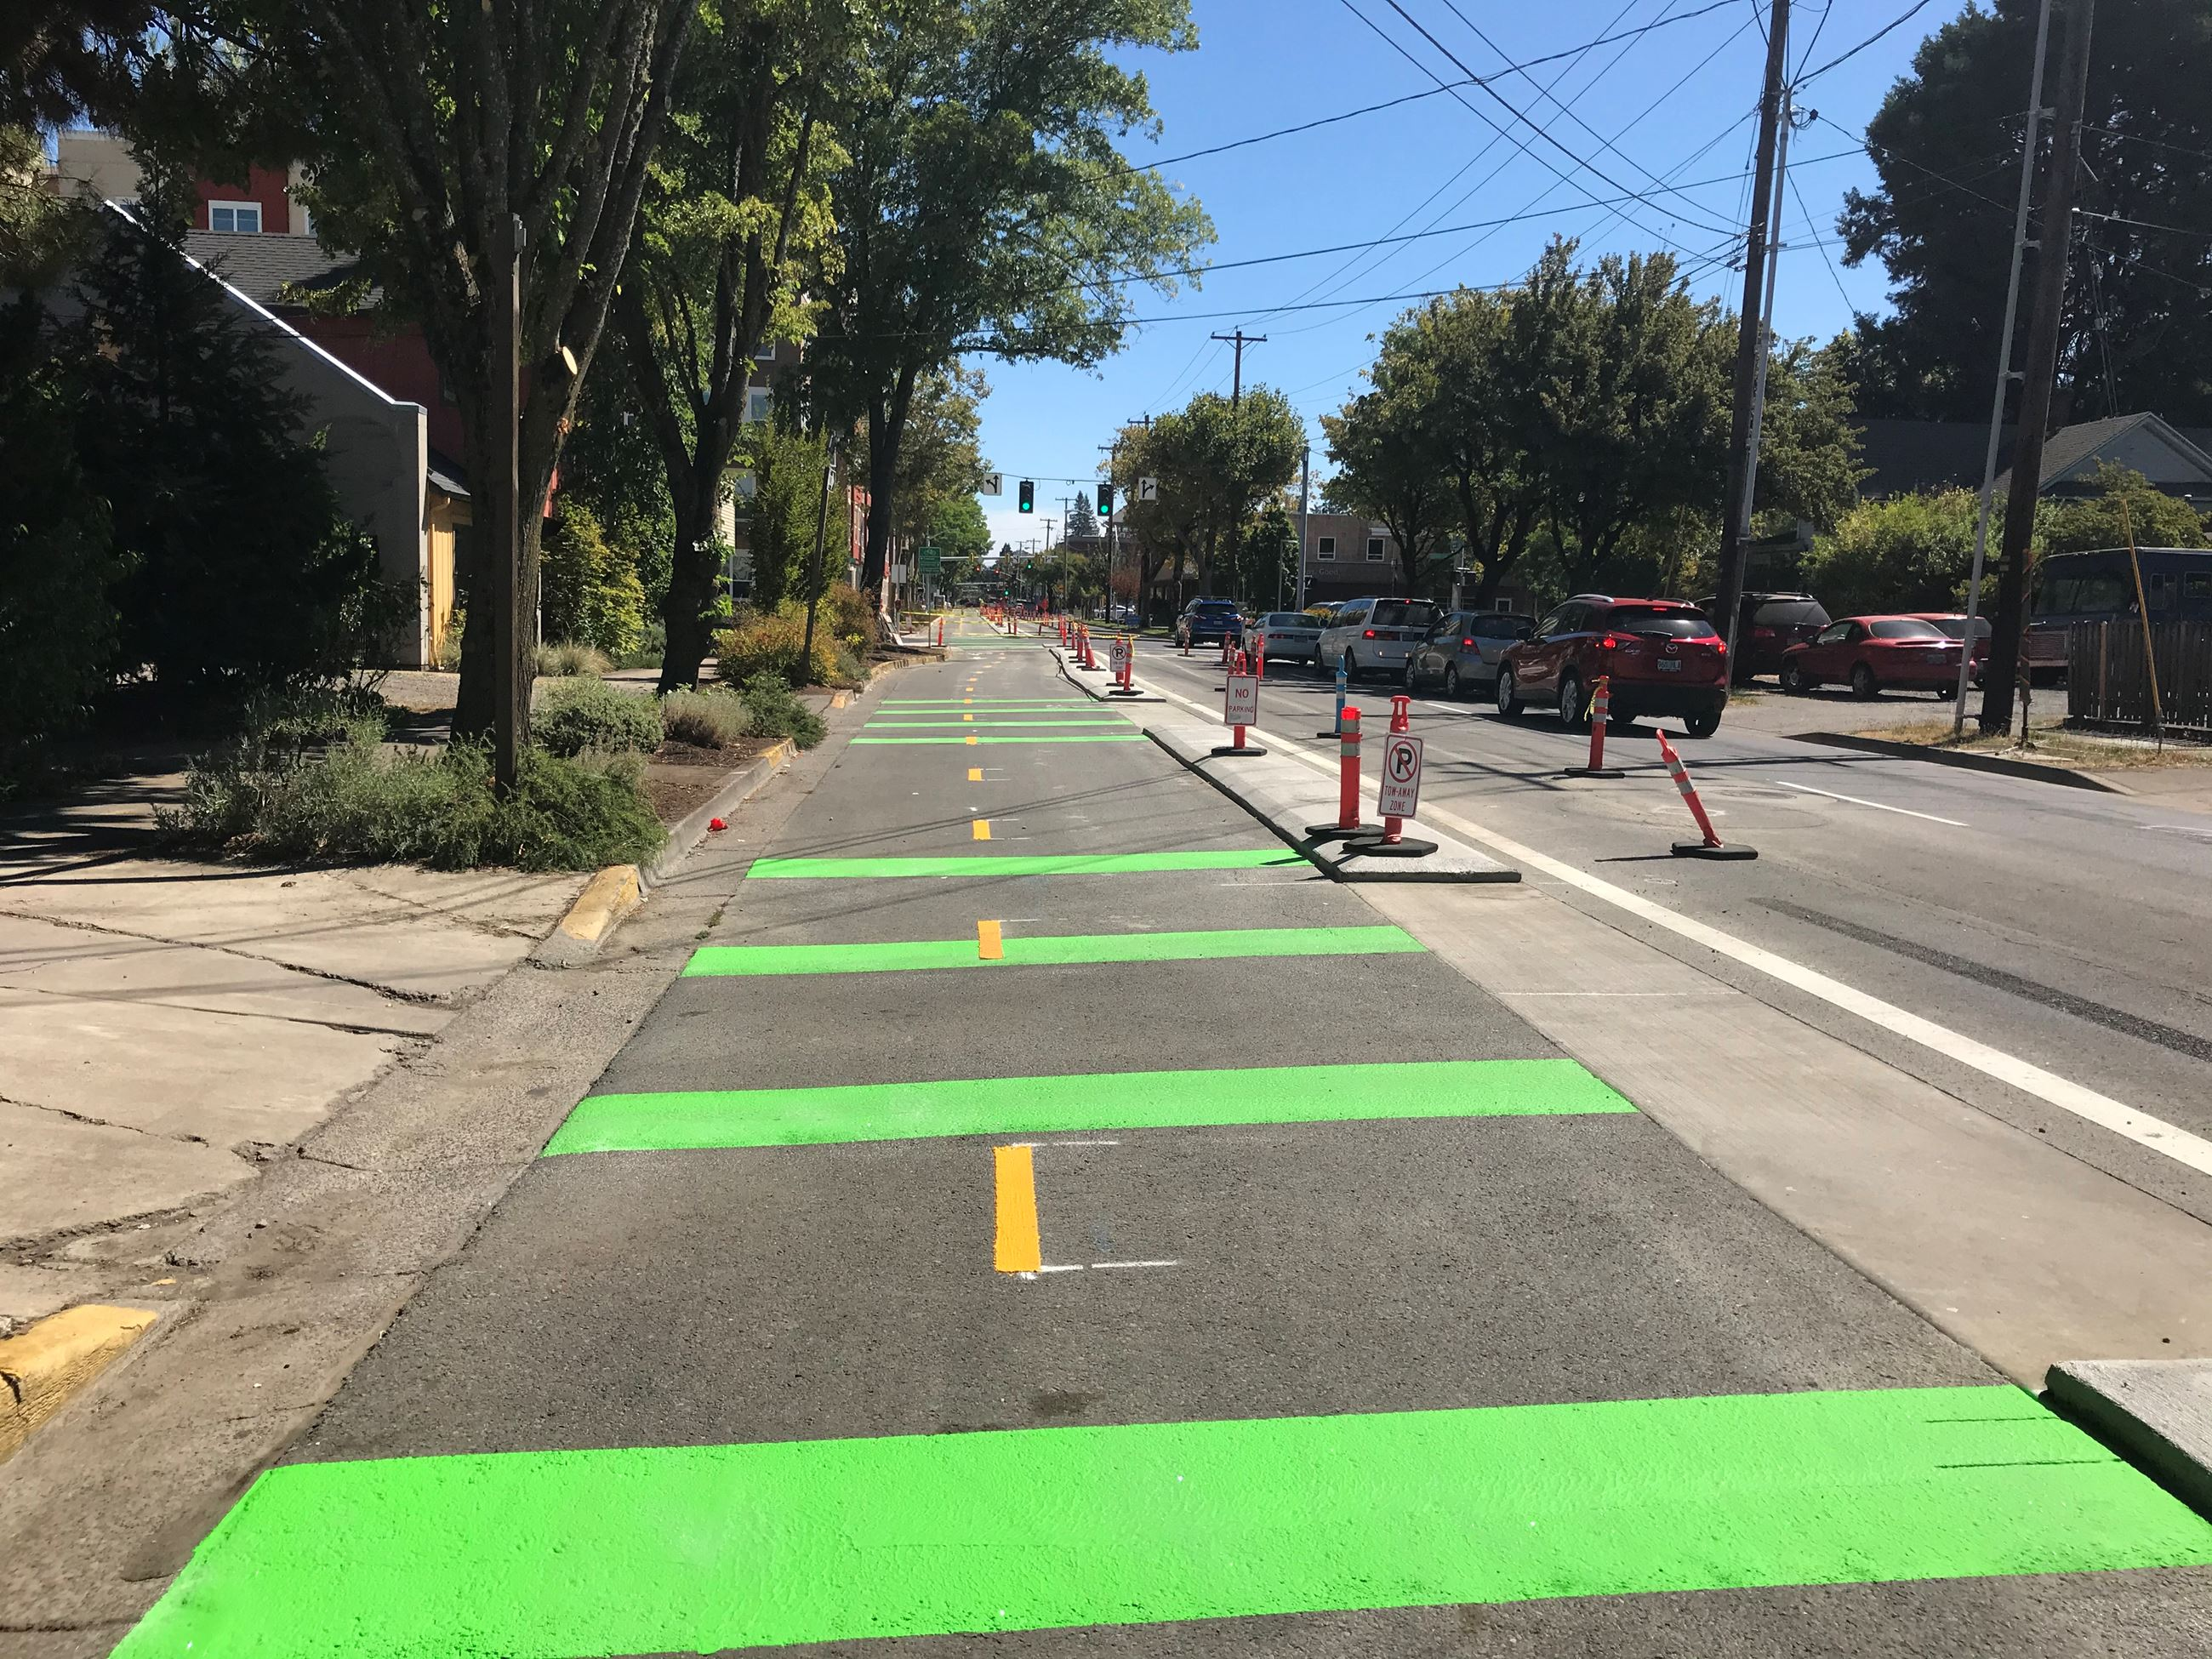 13th Avenue Bikeway. Green painted two-way protected bike lanes.